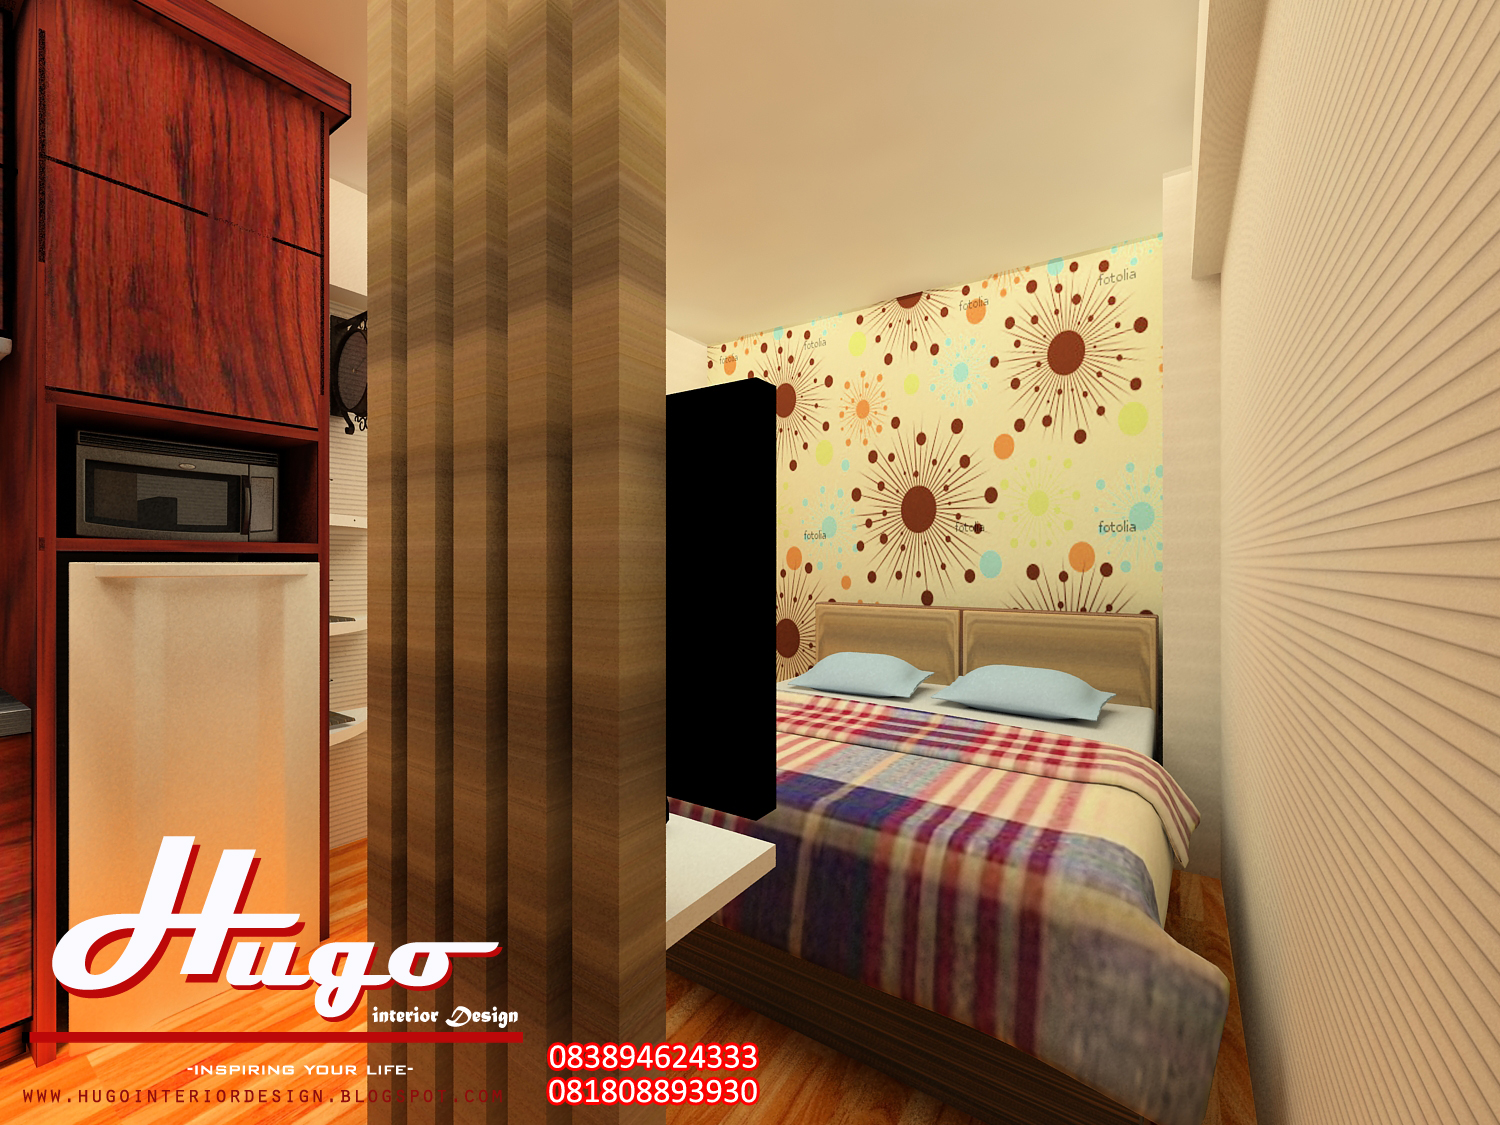 Design Interior Apartment Green Bay Pluit